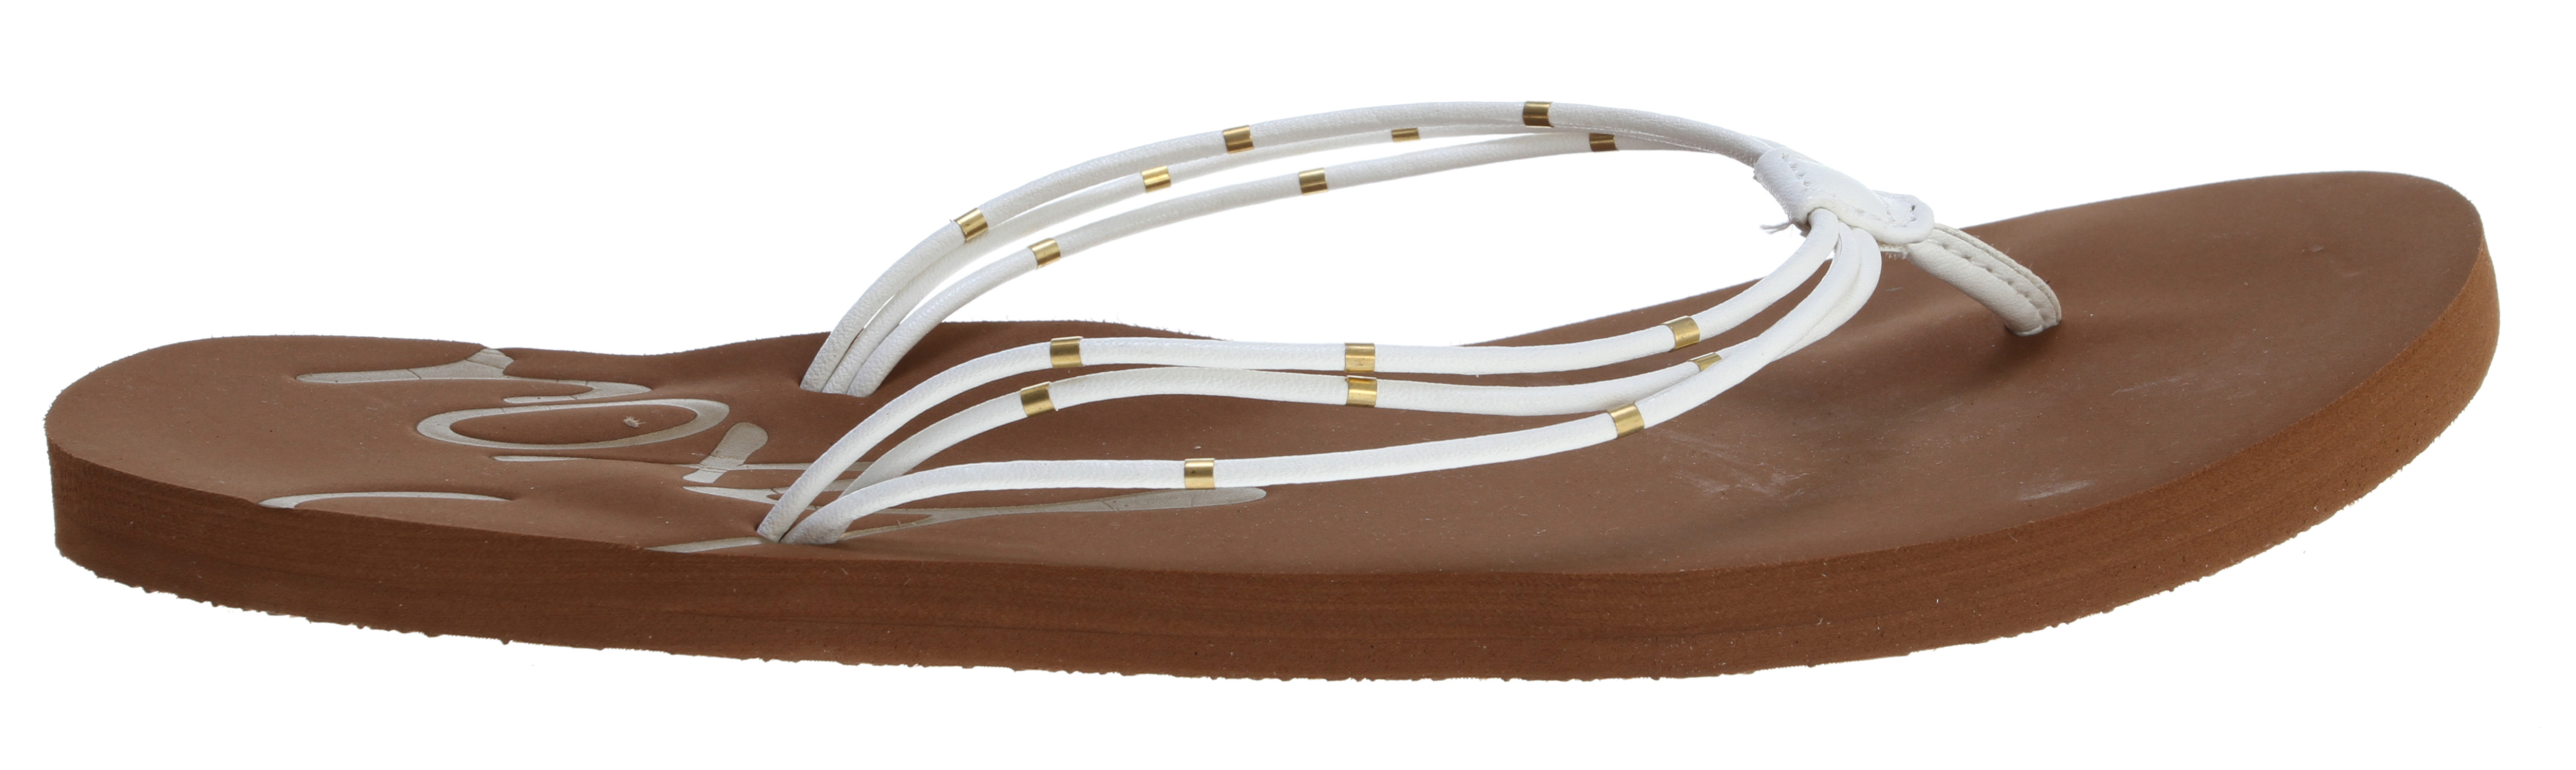 Surf Key Features of the Roxy Rica Sandals: Ornamented multi strap upper in soft pu Soft EVA footbed w/ ROXY emboss - $16.95